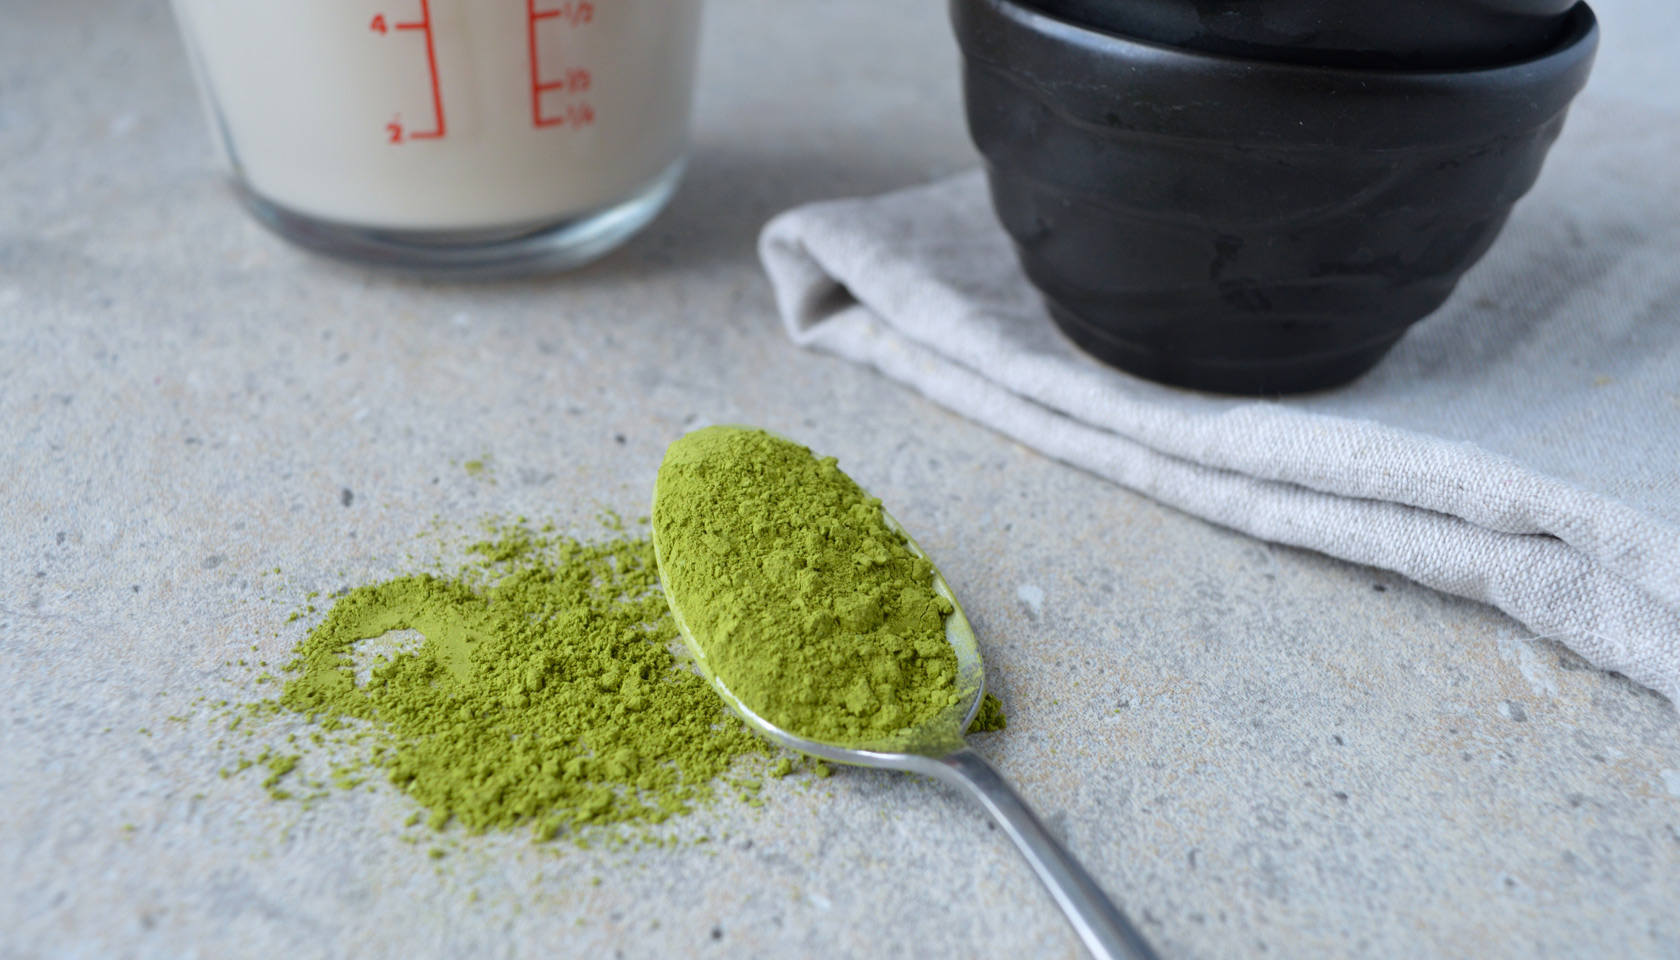 It's best to drink matcha in moderation